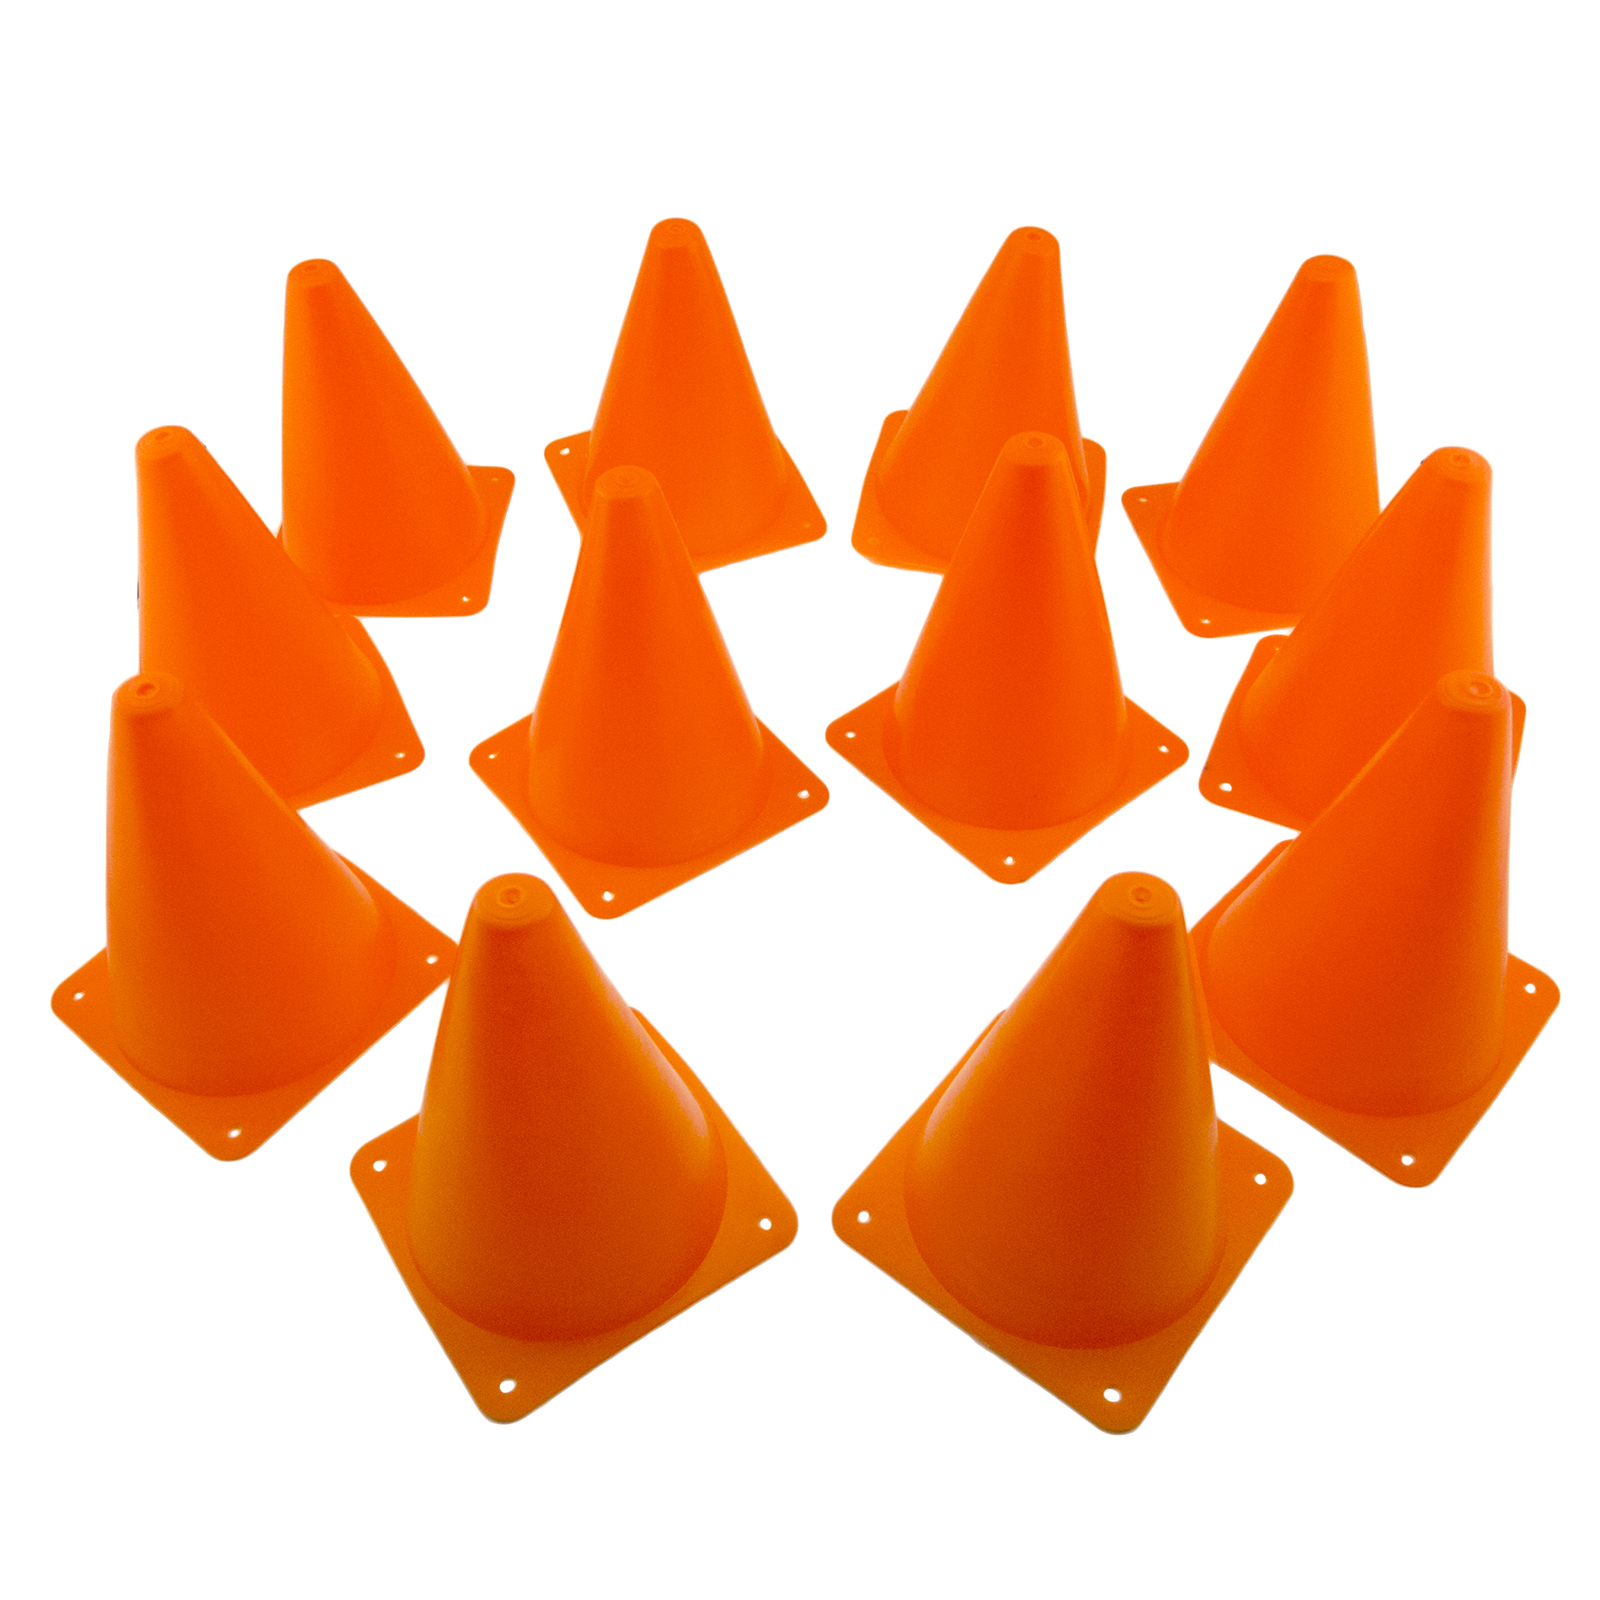 New Training Cones 7 Quot Tall Sports Orange Traffic Safety